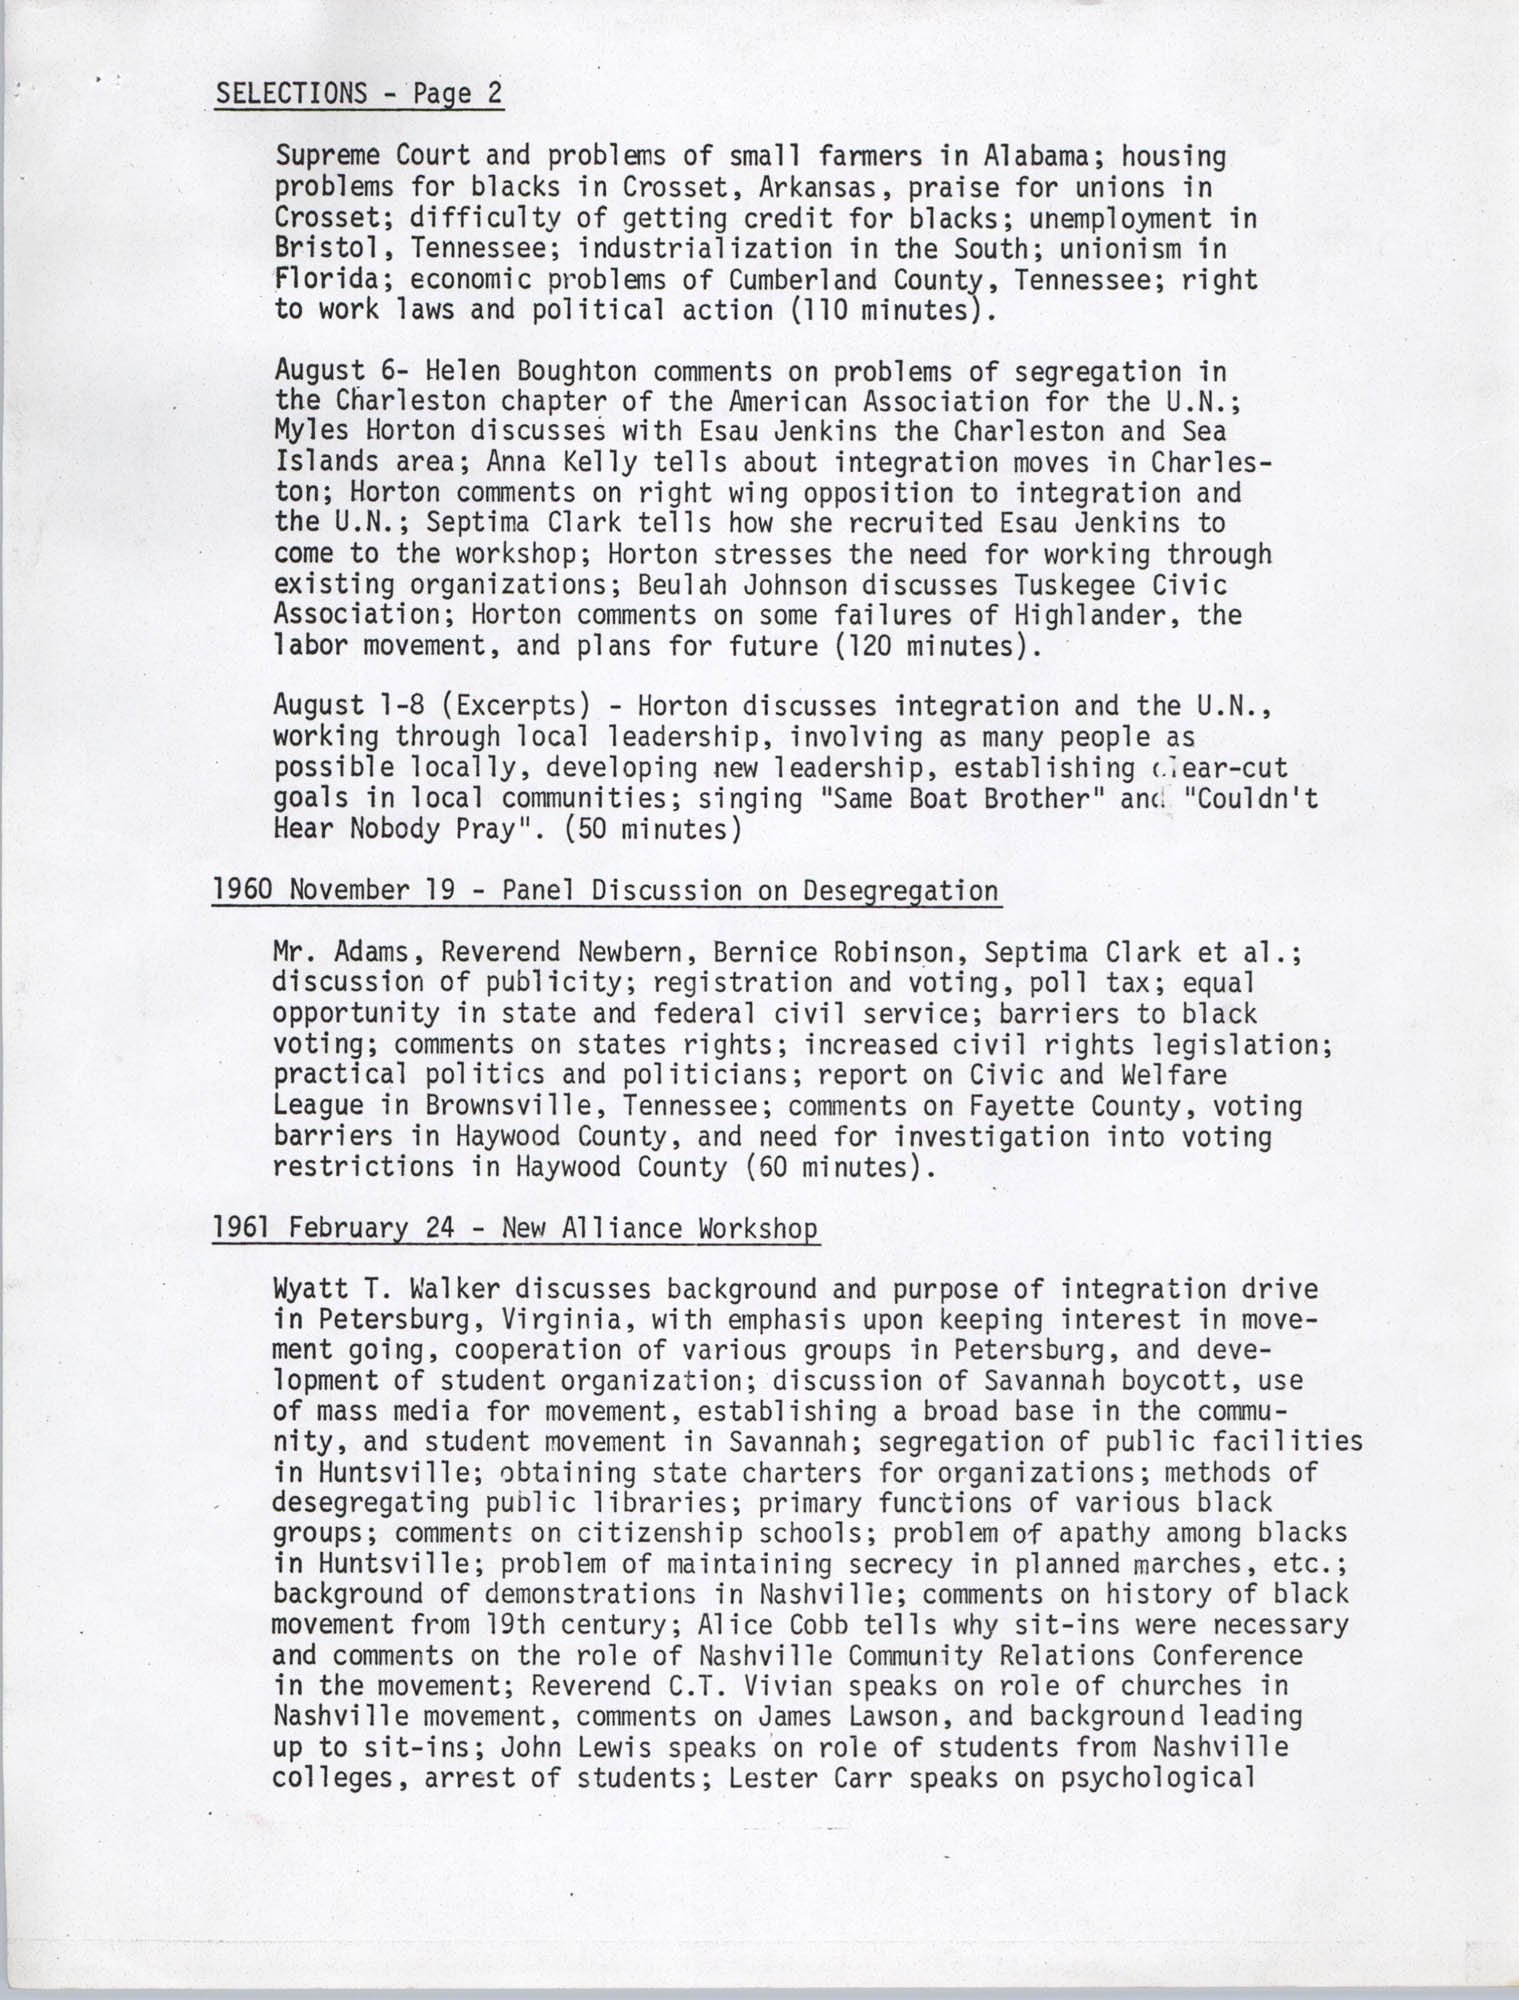 Civil Rights Movement Oral History Project, Foxfire Learning Concept, Appendix B, Page 2